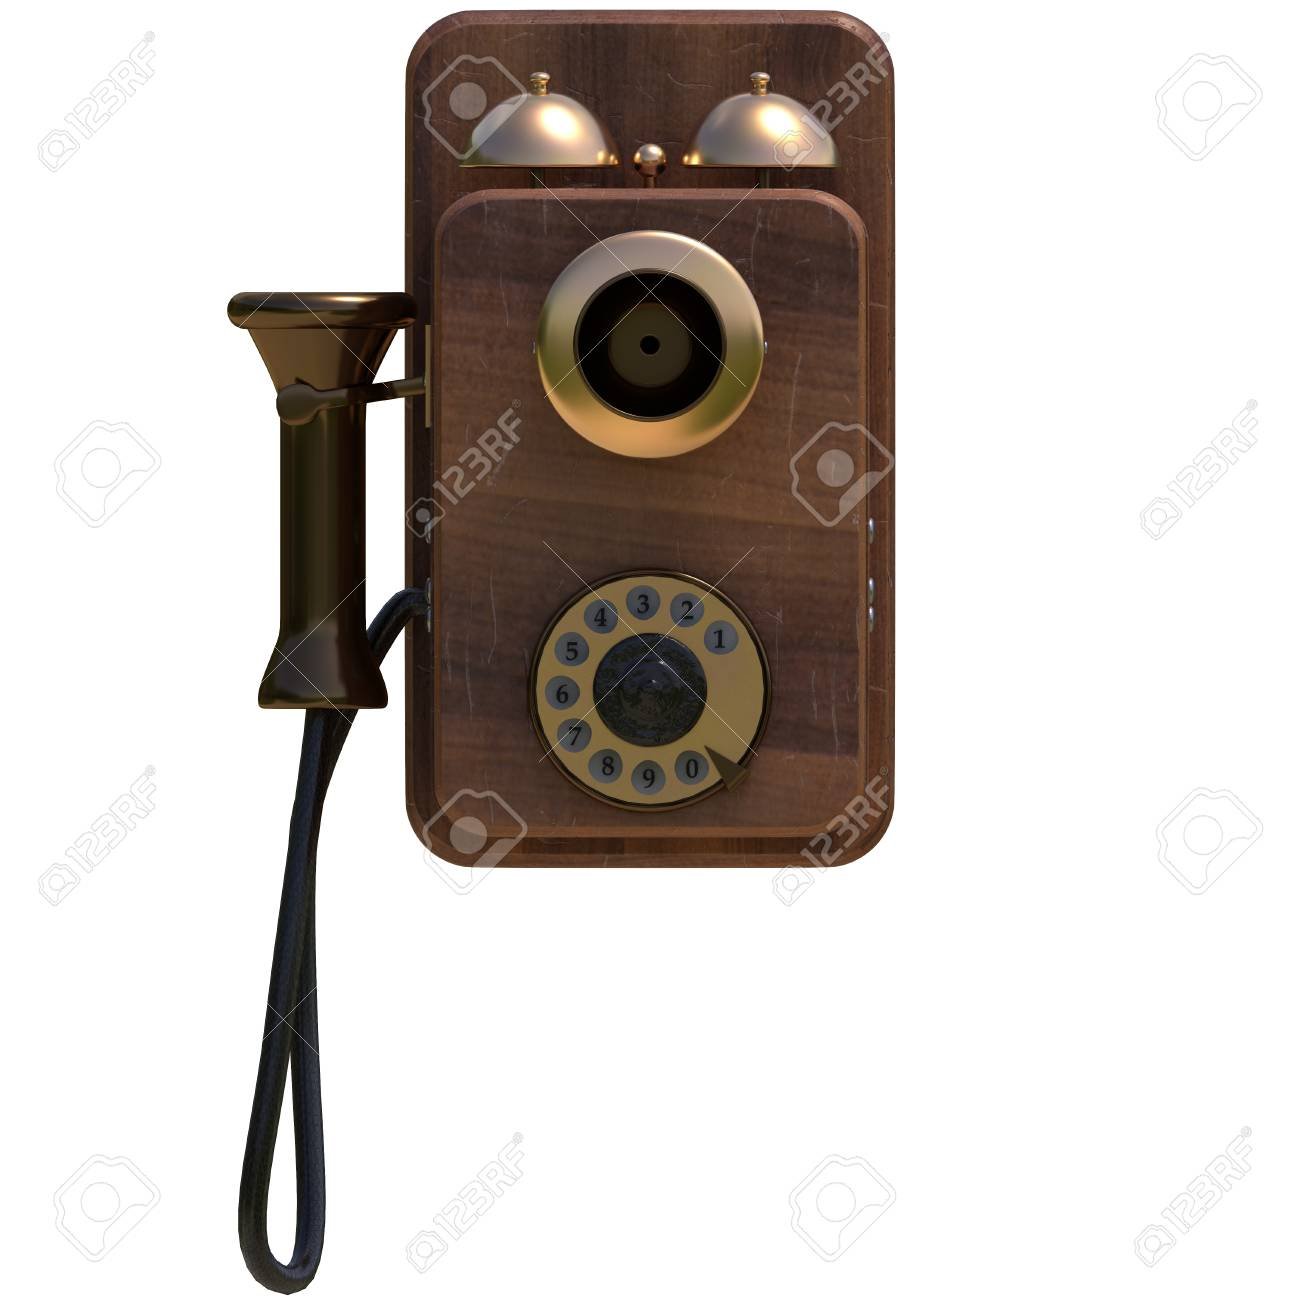 hight resolution of old antique phone stock photo 71929572